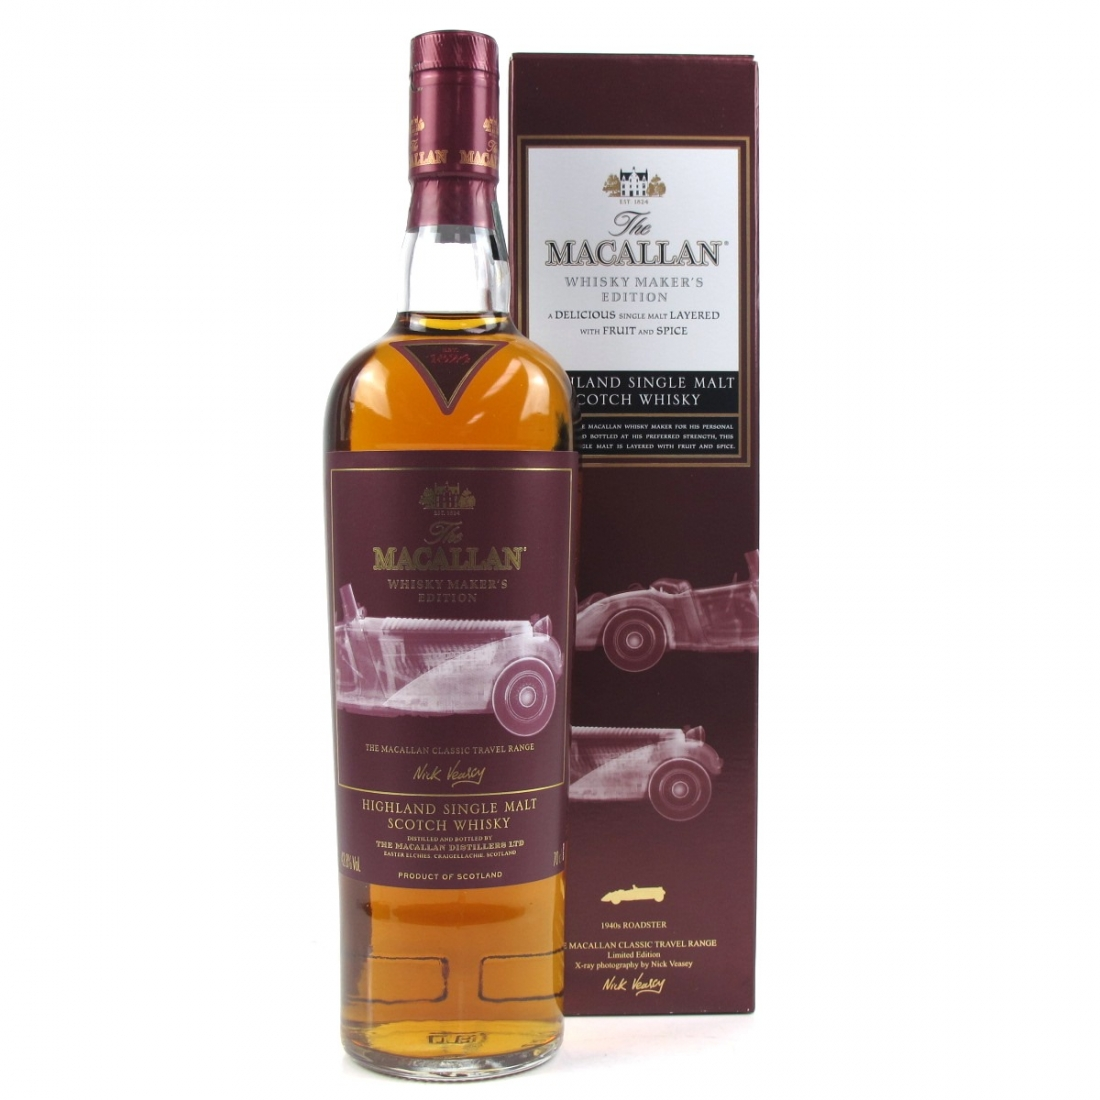 Macallan Whisky Makers Edition 1930's Roadstar